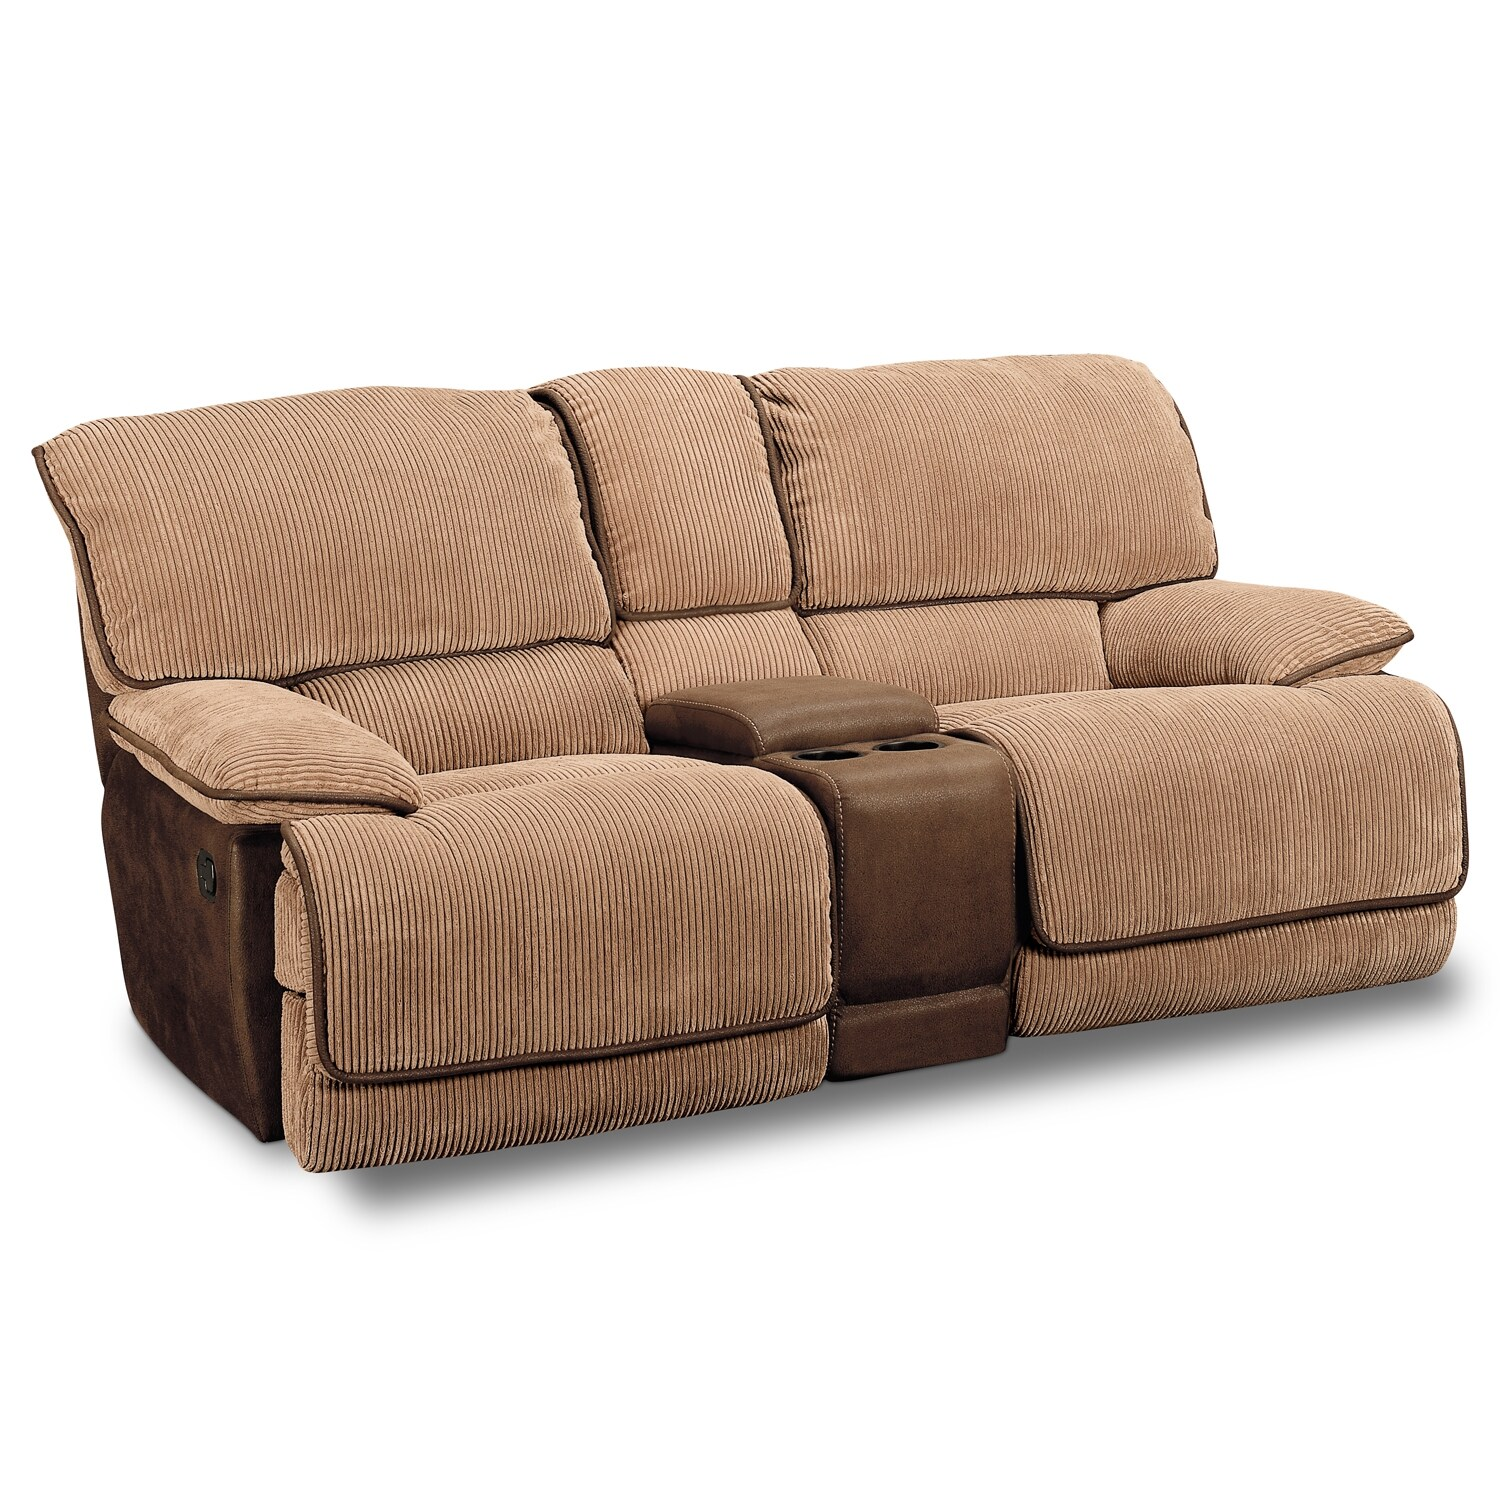 Living Room Furniture - Laguna Gliding Reclining Loveseat - Camel